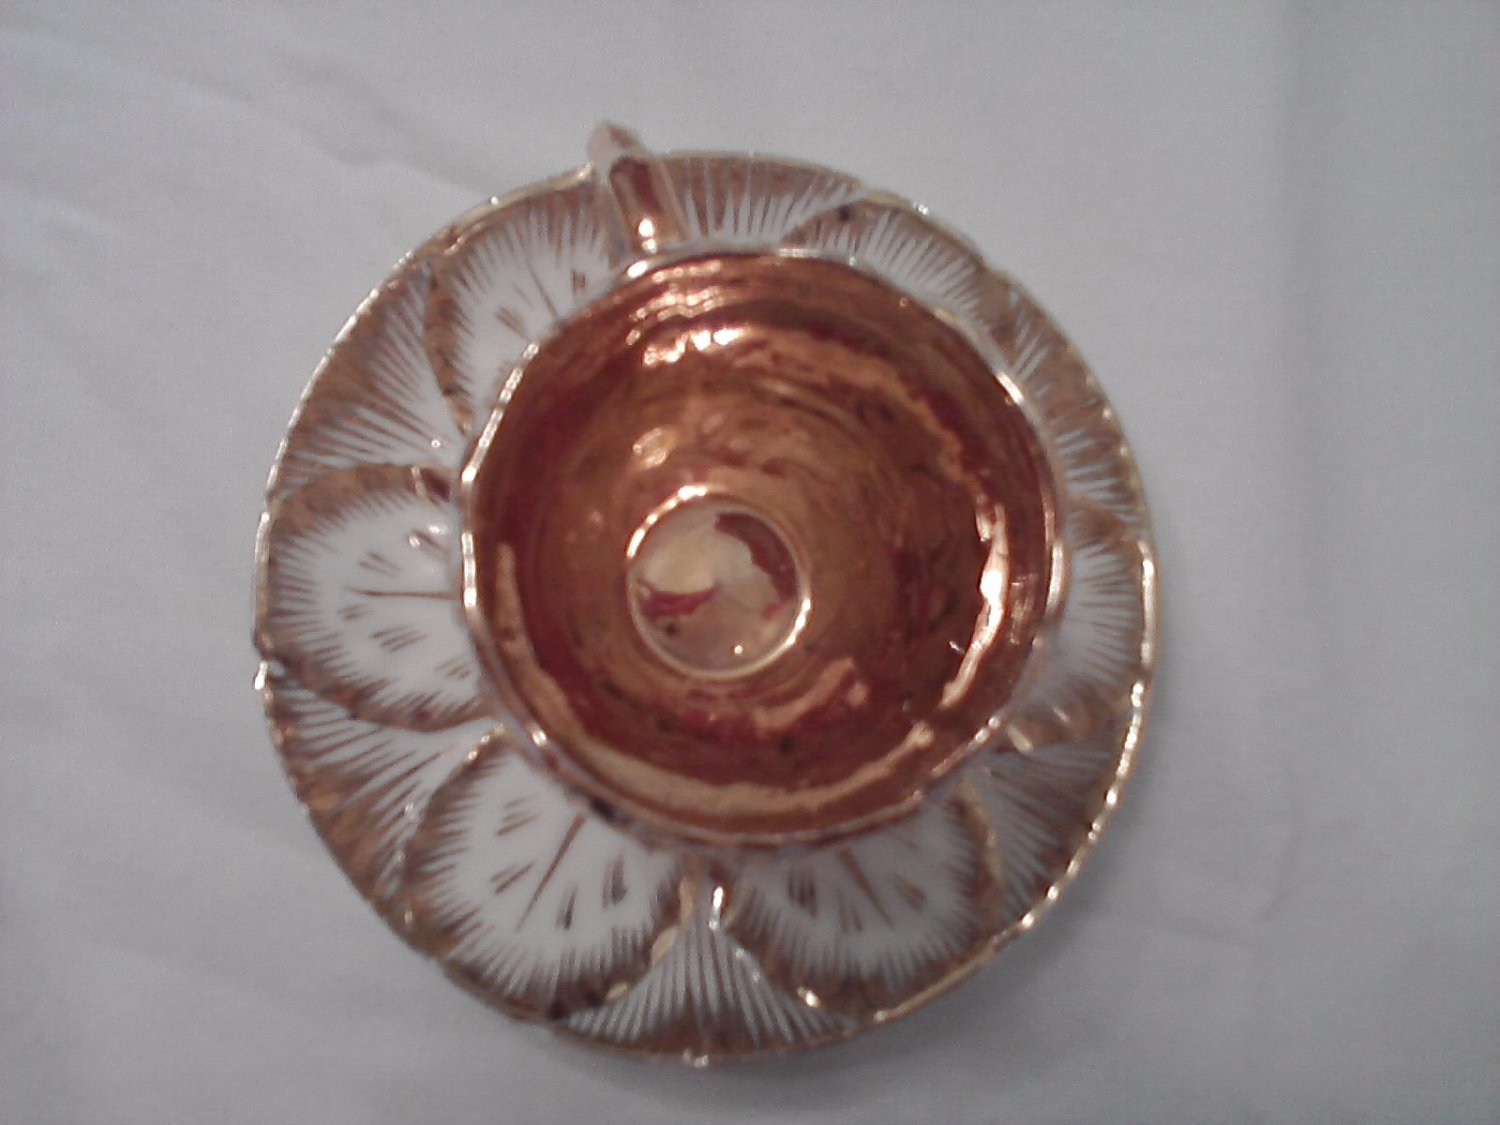 Absolutely Gorgeous Antique Gold encrusted Teacup and Saucer